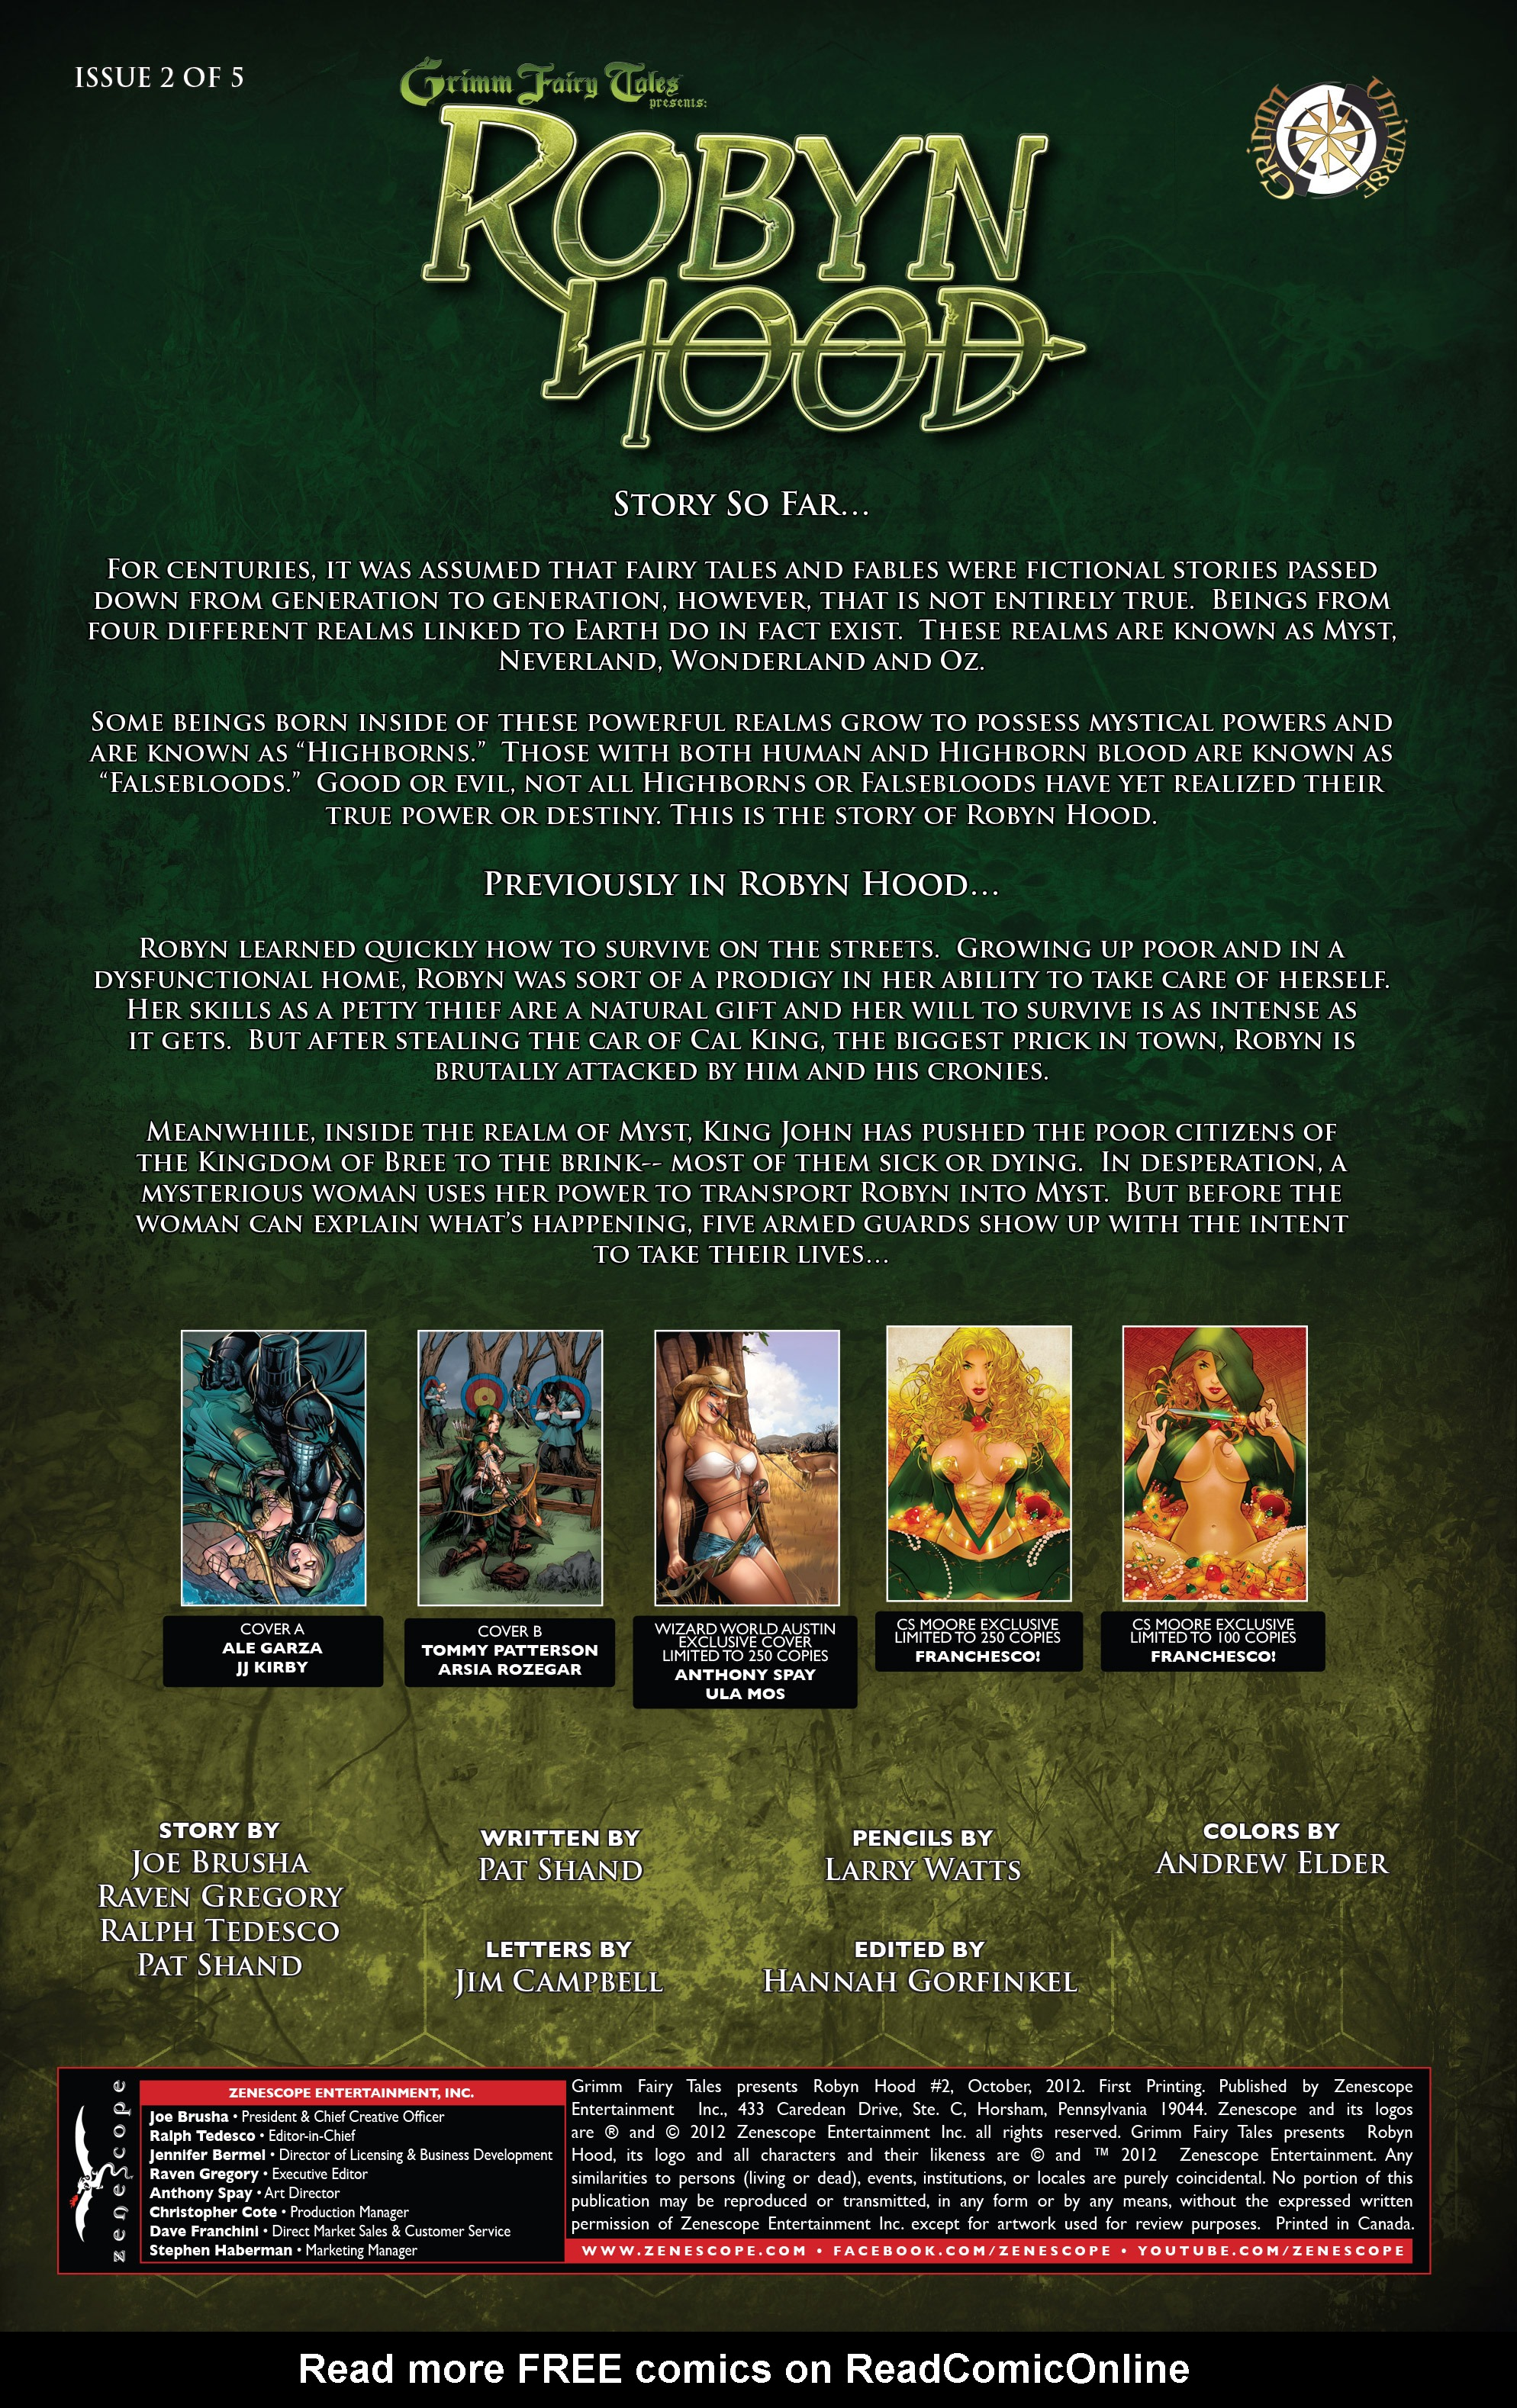 Read online Grimm Fairy Tales presents Robyn Hood (2012) comic -  Issue #2 - 2